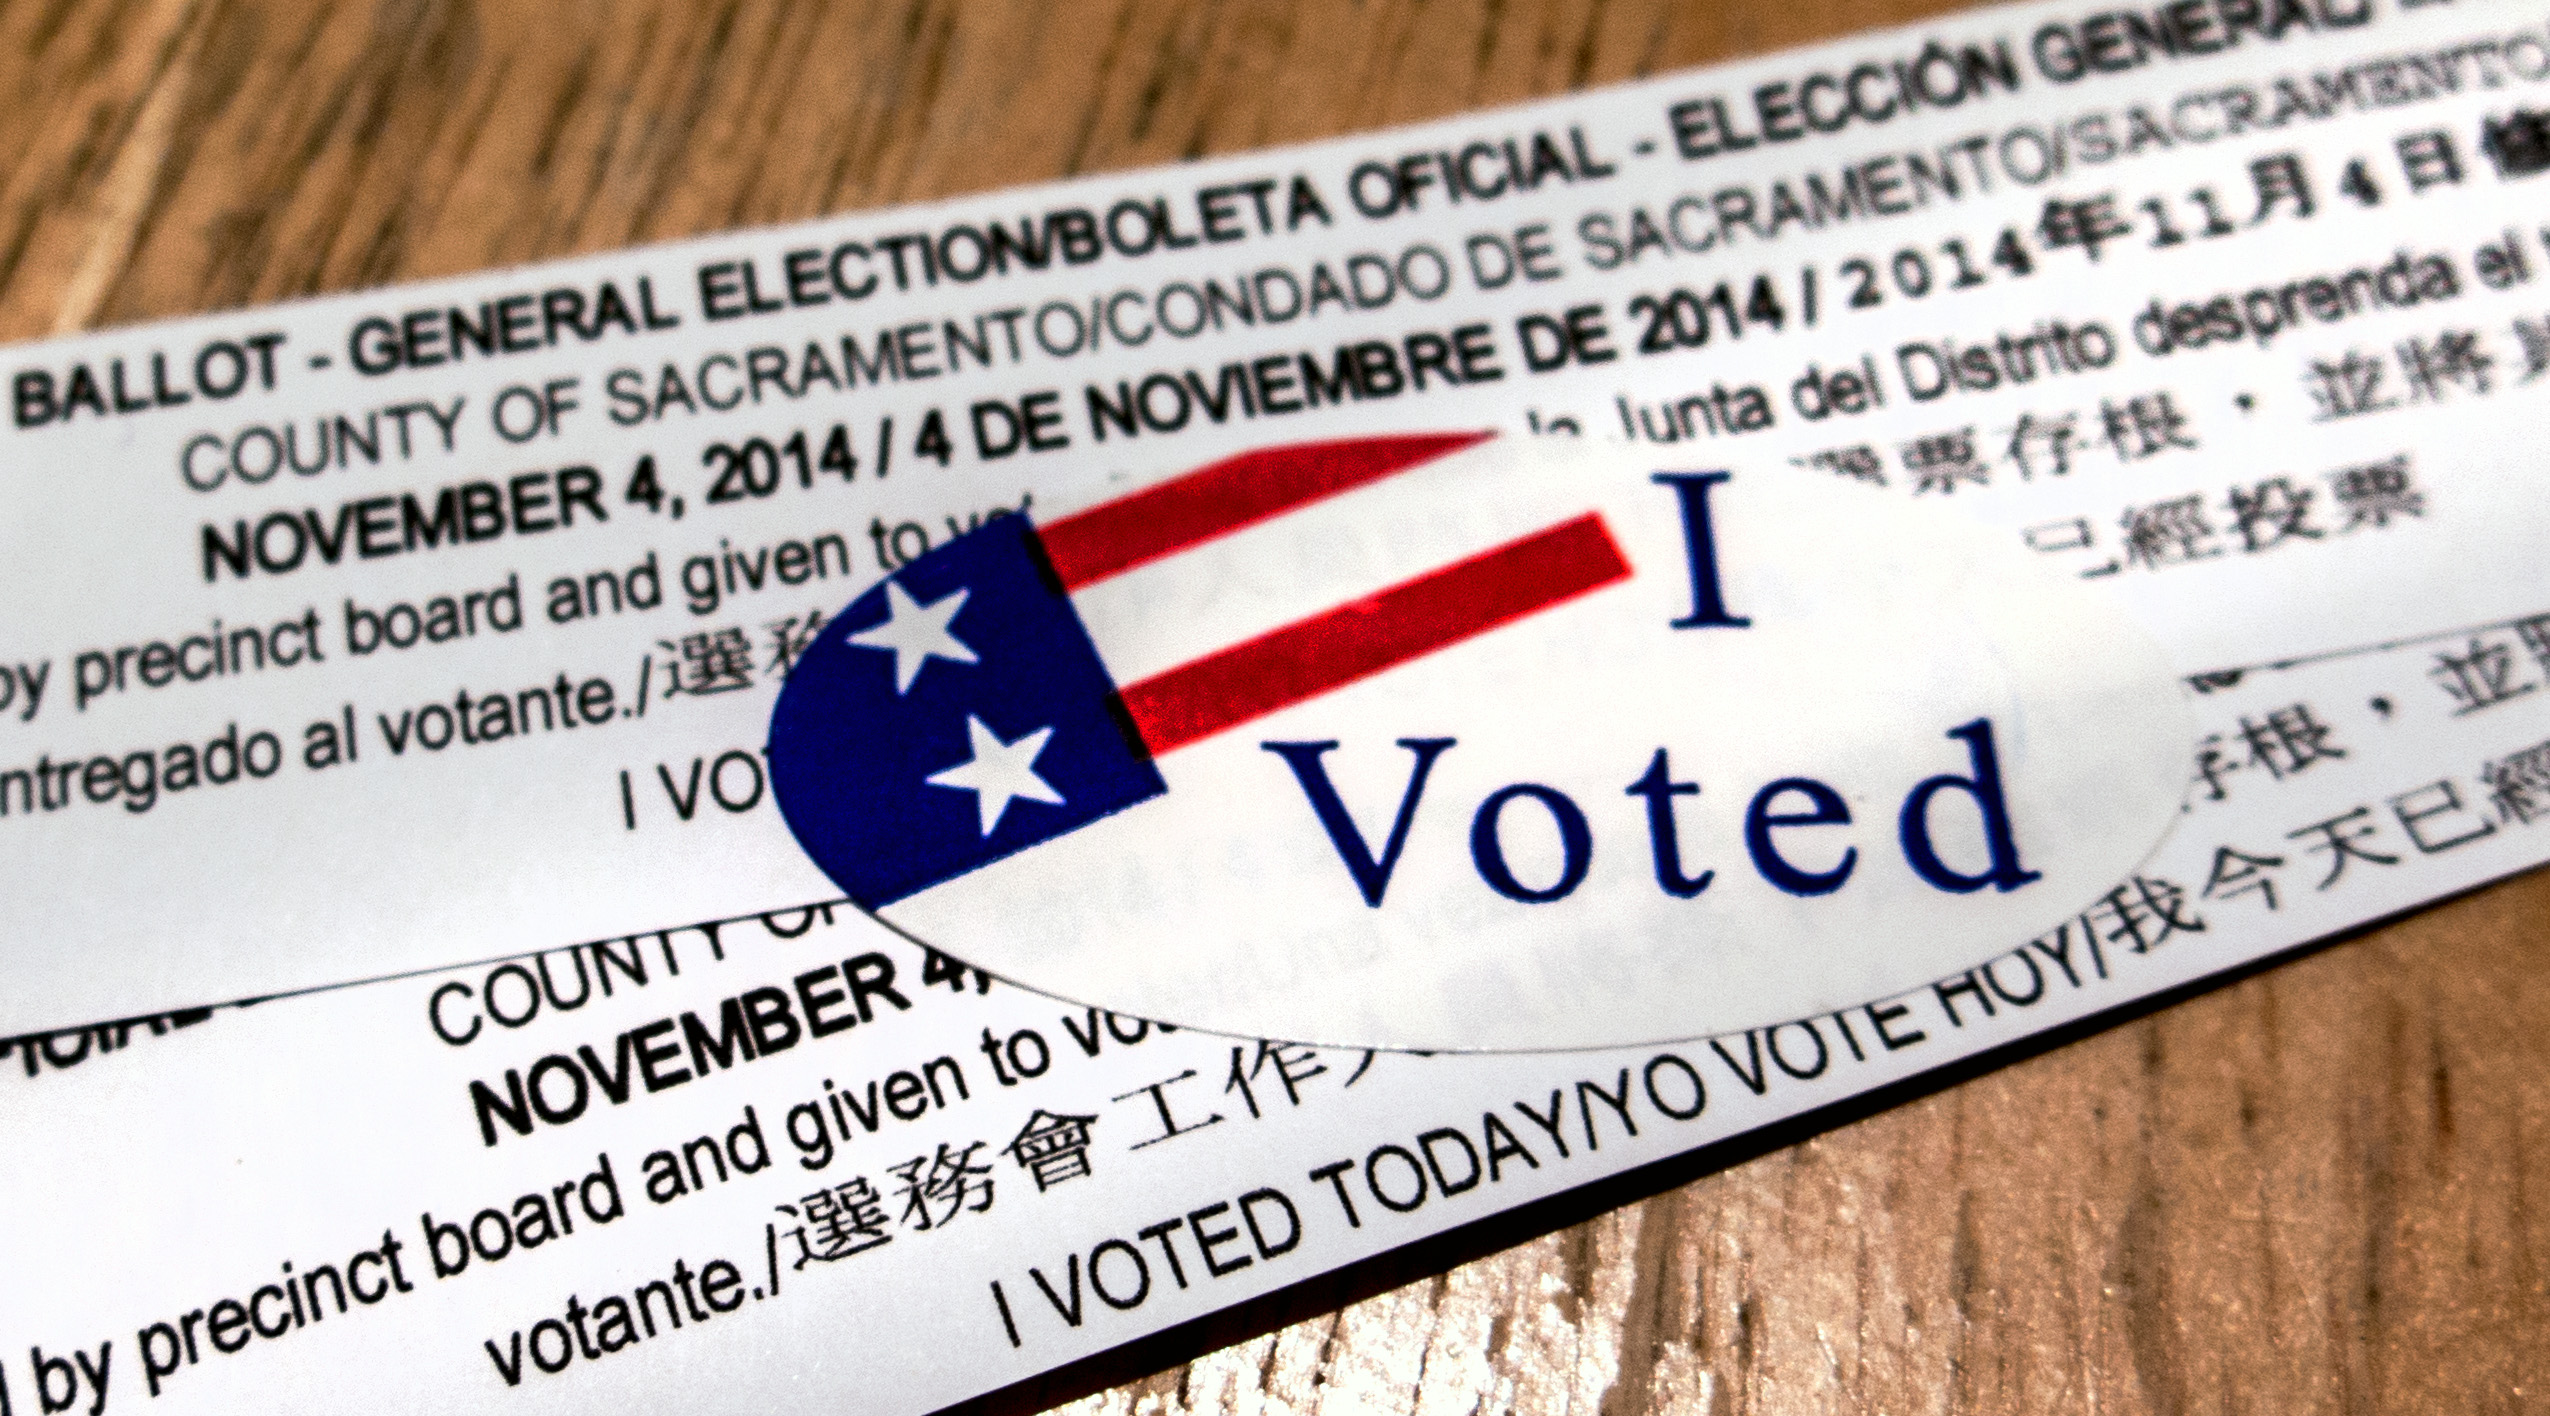 Solving Problems: Replacing Runoffs with Ranked Choice Voting